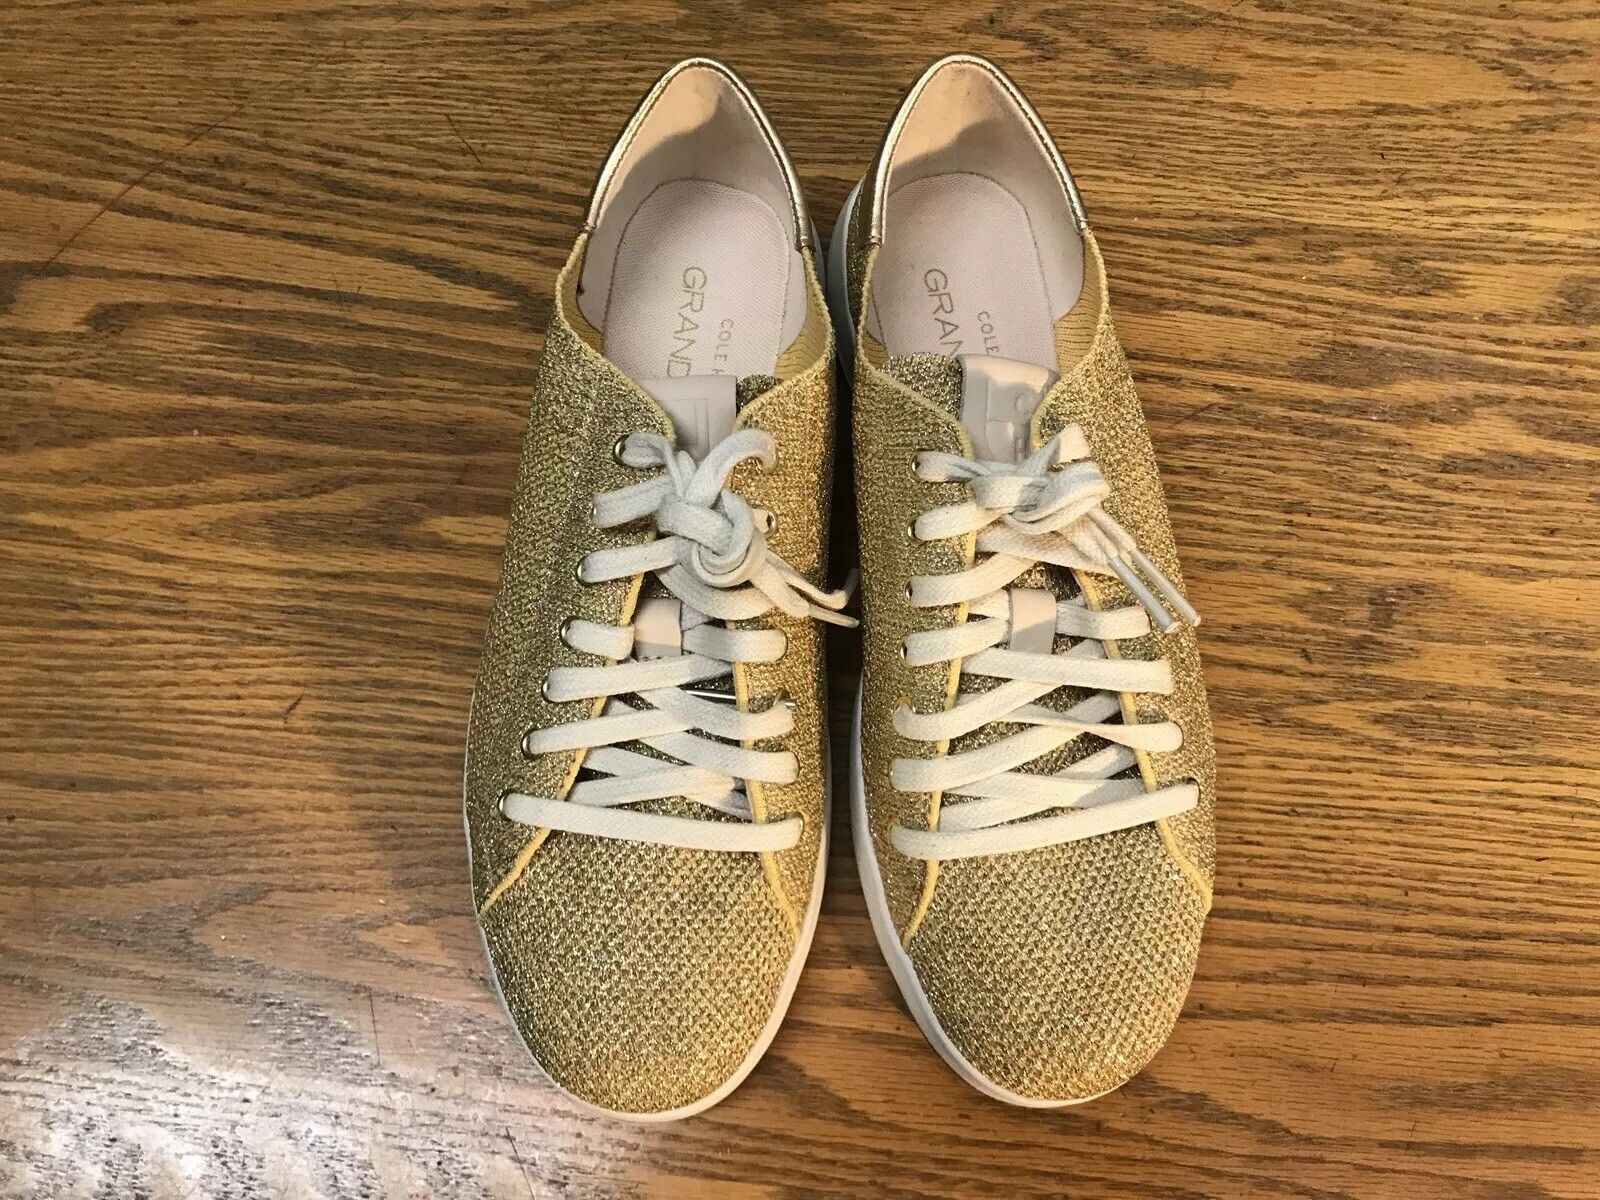 COLE HAAN GRANDPRO STICHTLITE LACE UP WOMENS WOMENS WOMENS TENNIS SHOES W11242 NEW SIZE 8 8ee90c